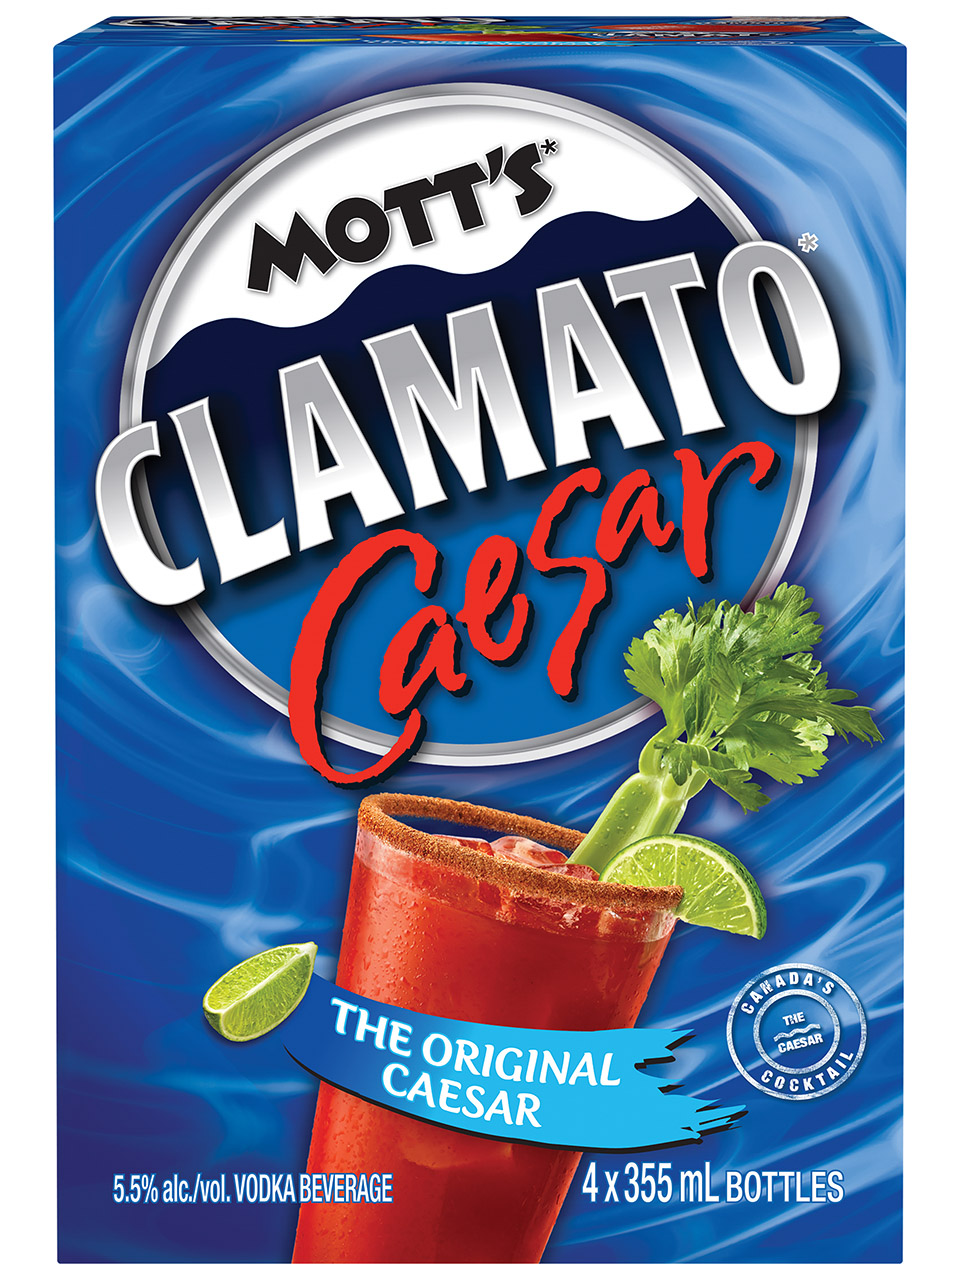 Mott's Clamato Caesar Original 4 Pack Bottles